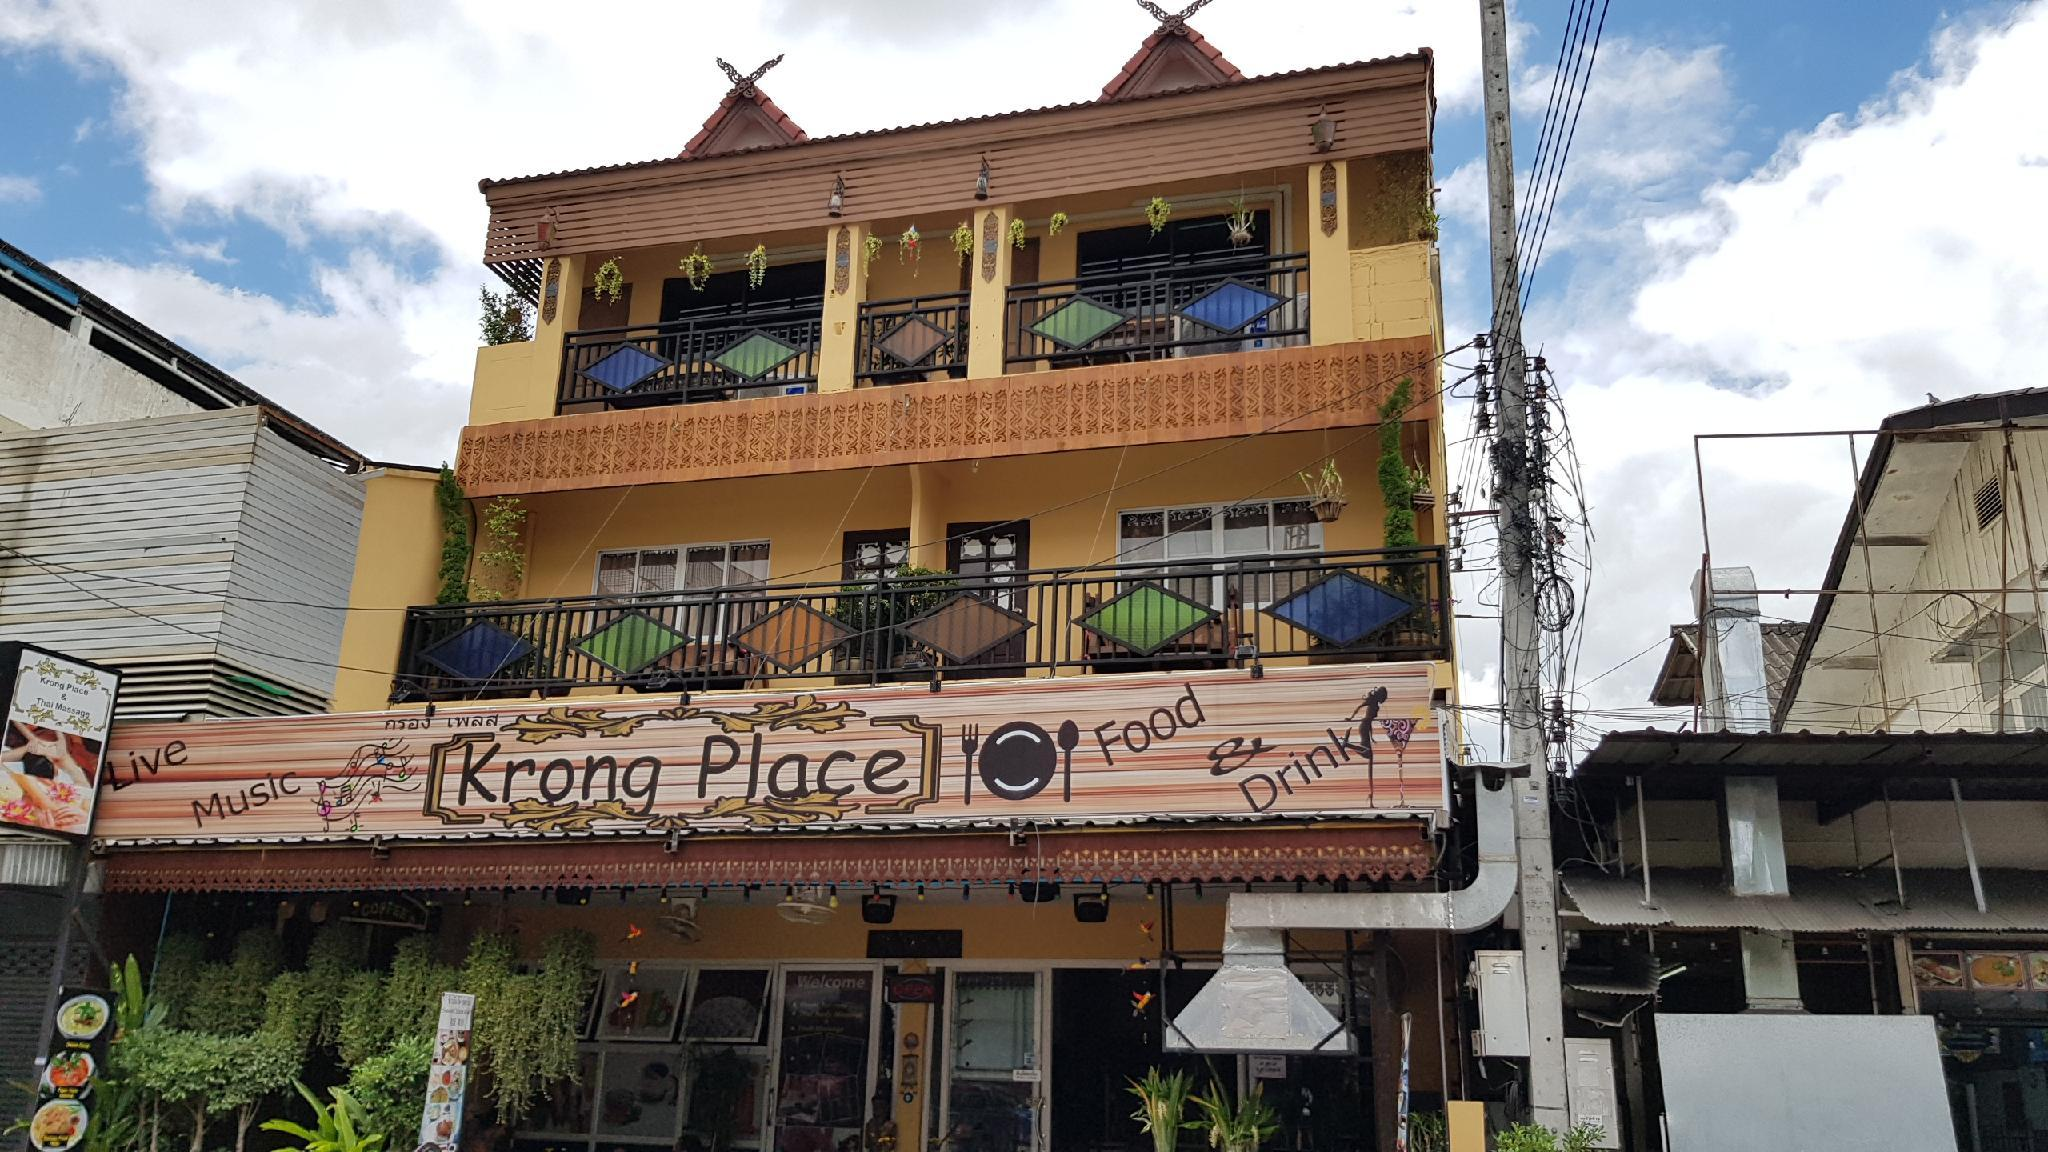 Krong Place